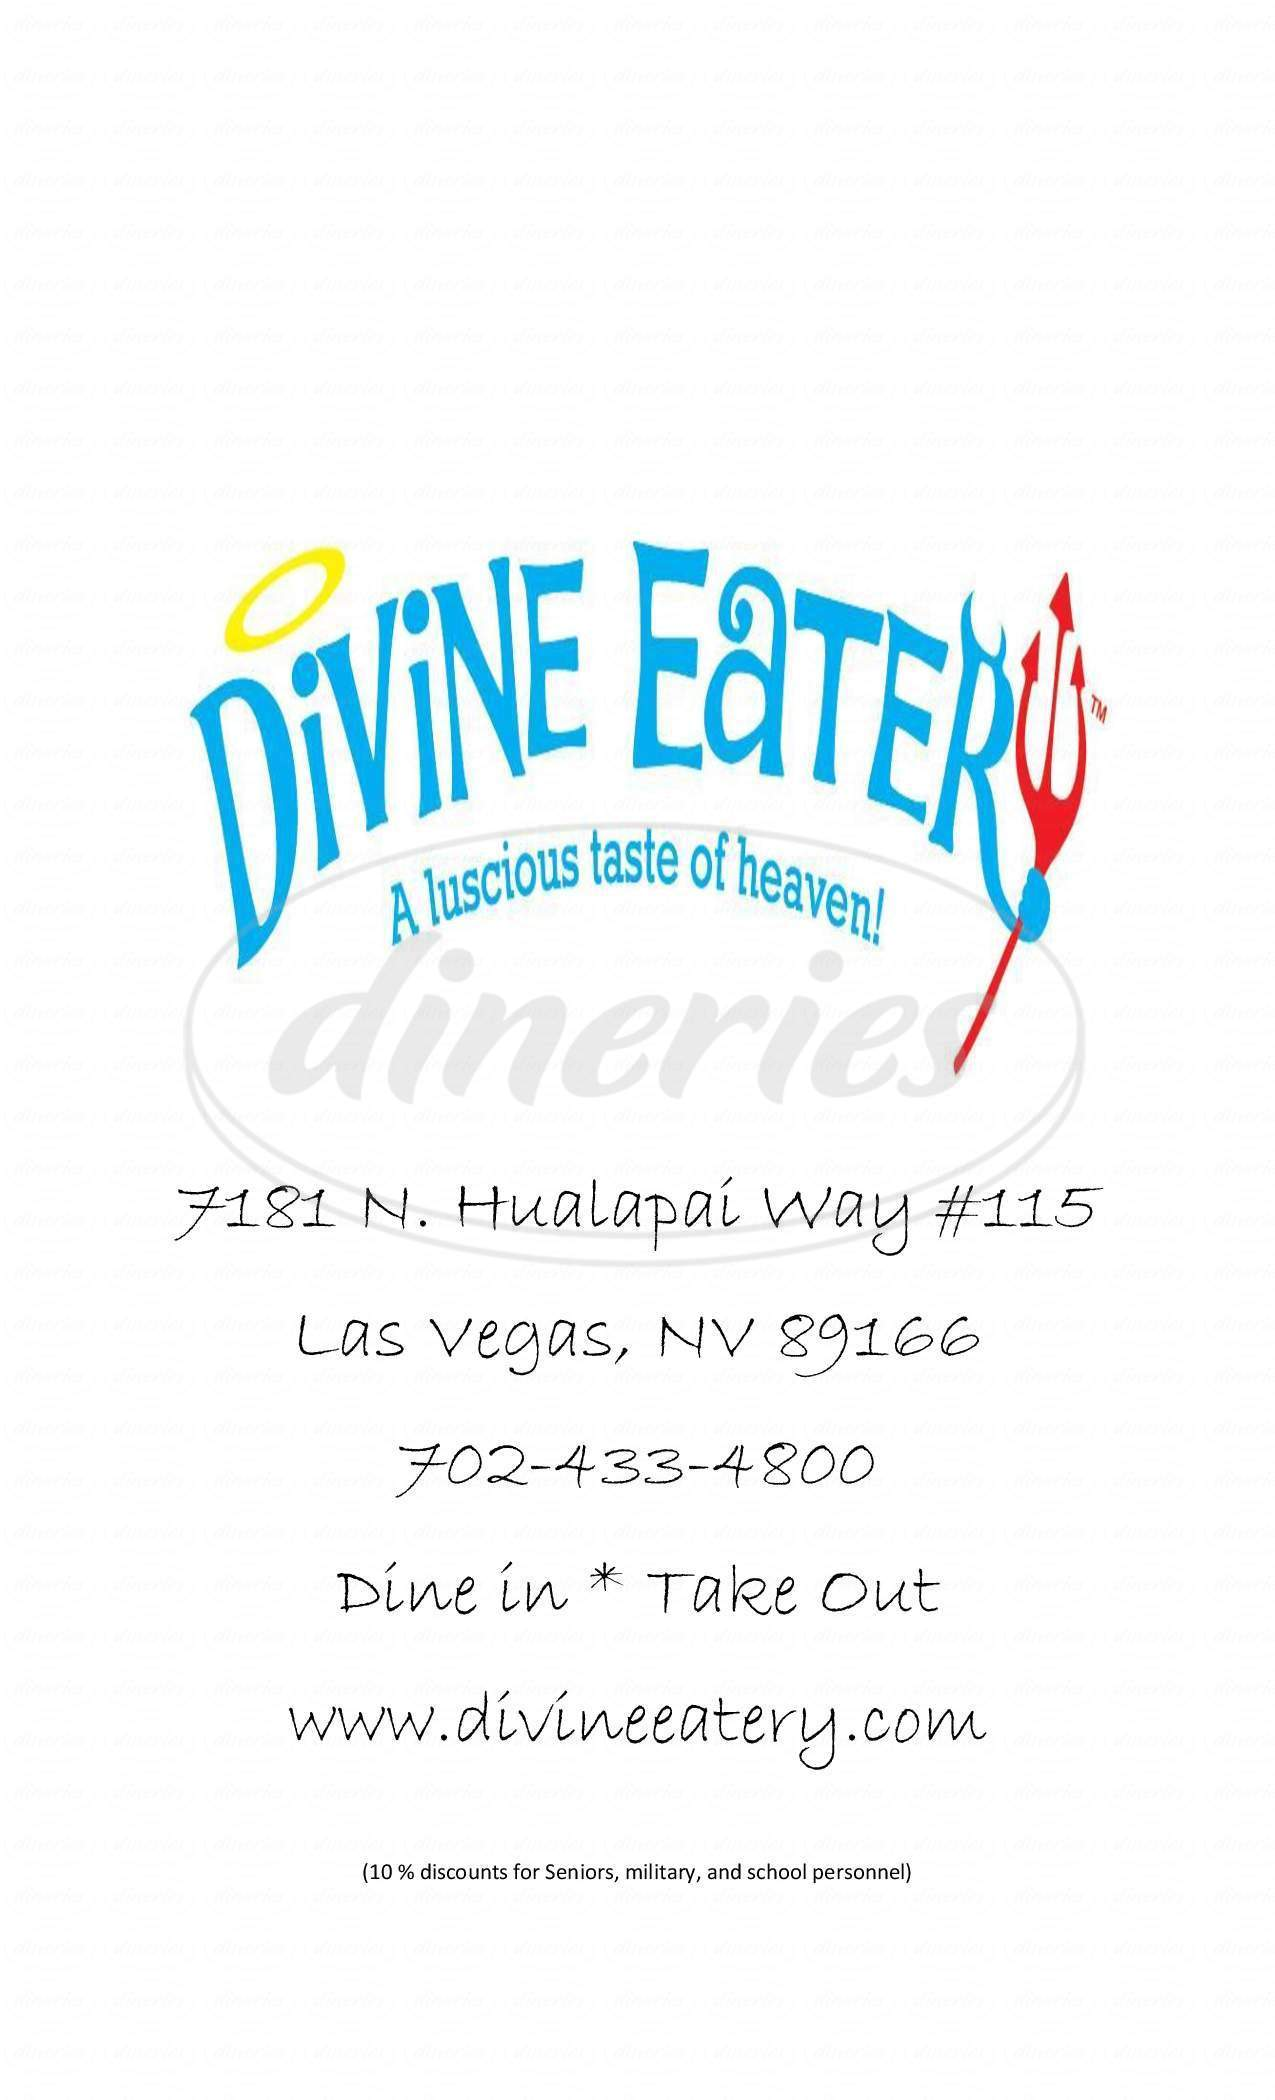 menu for Divine Eatery